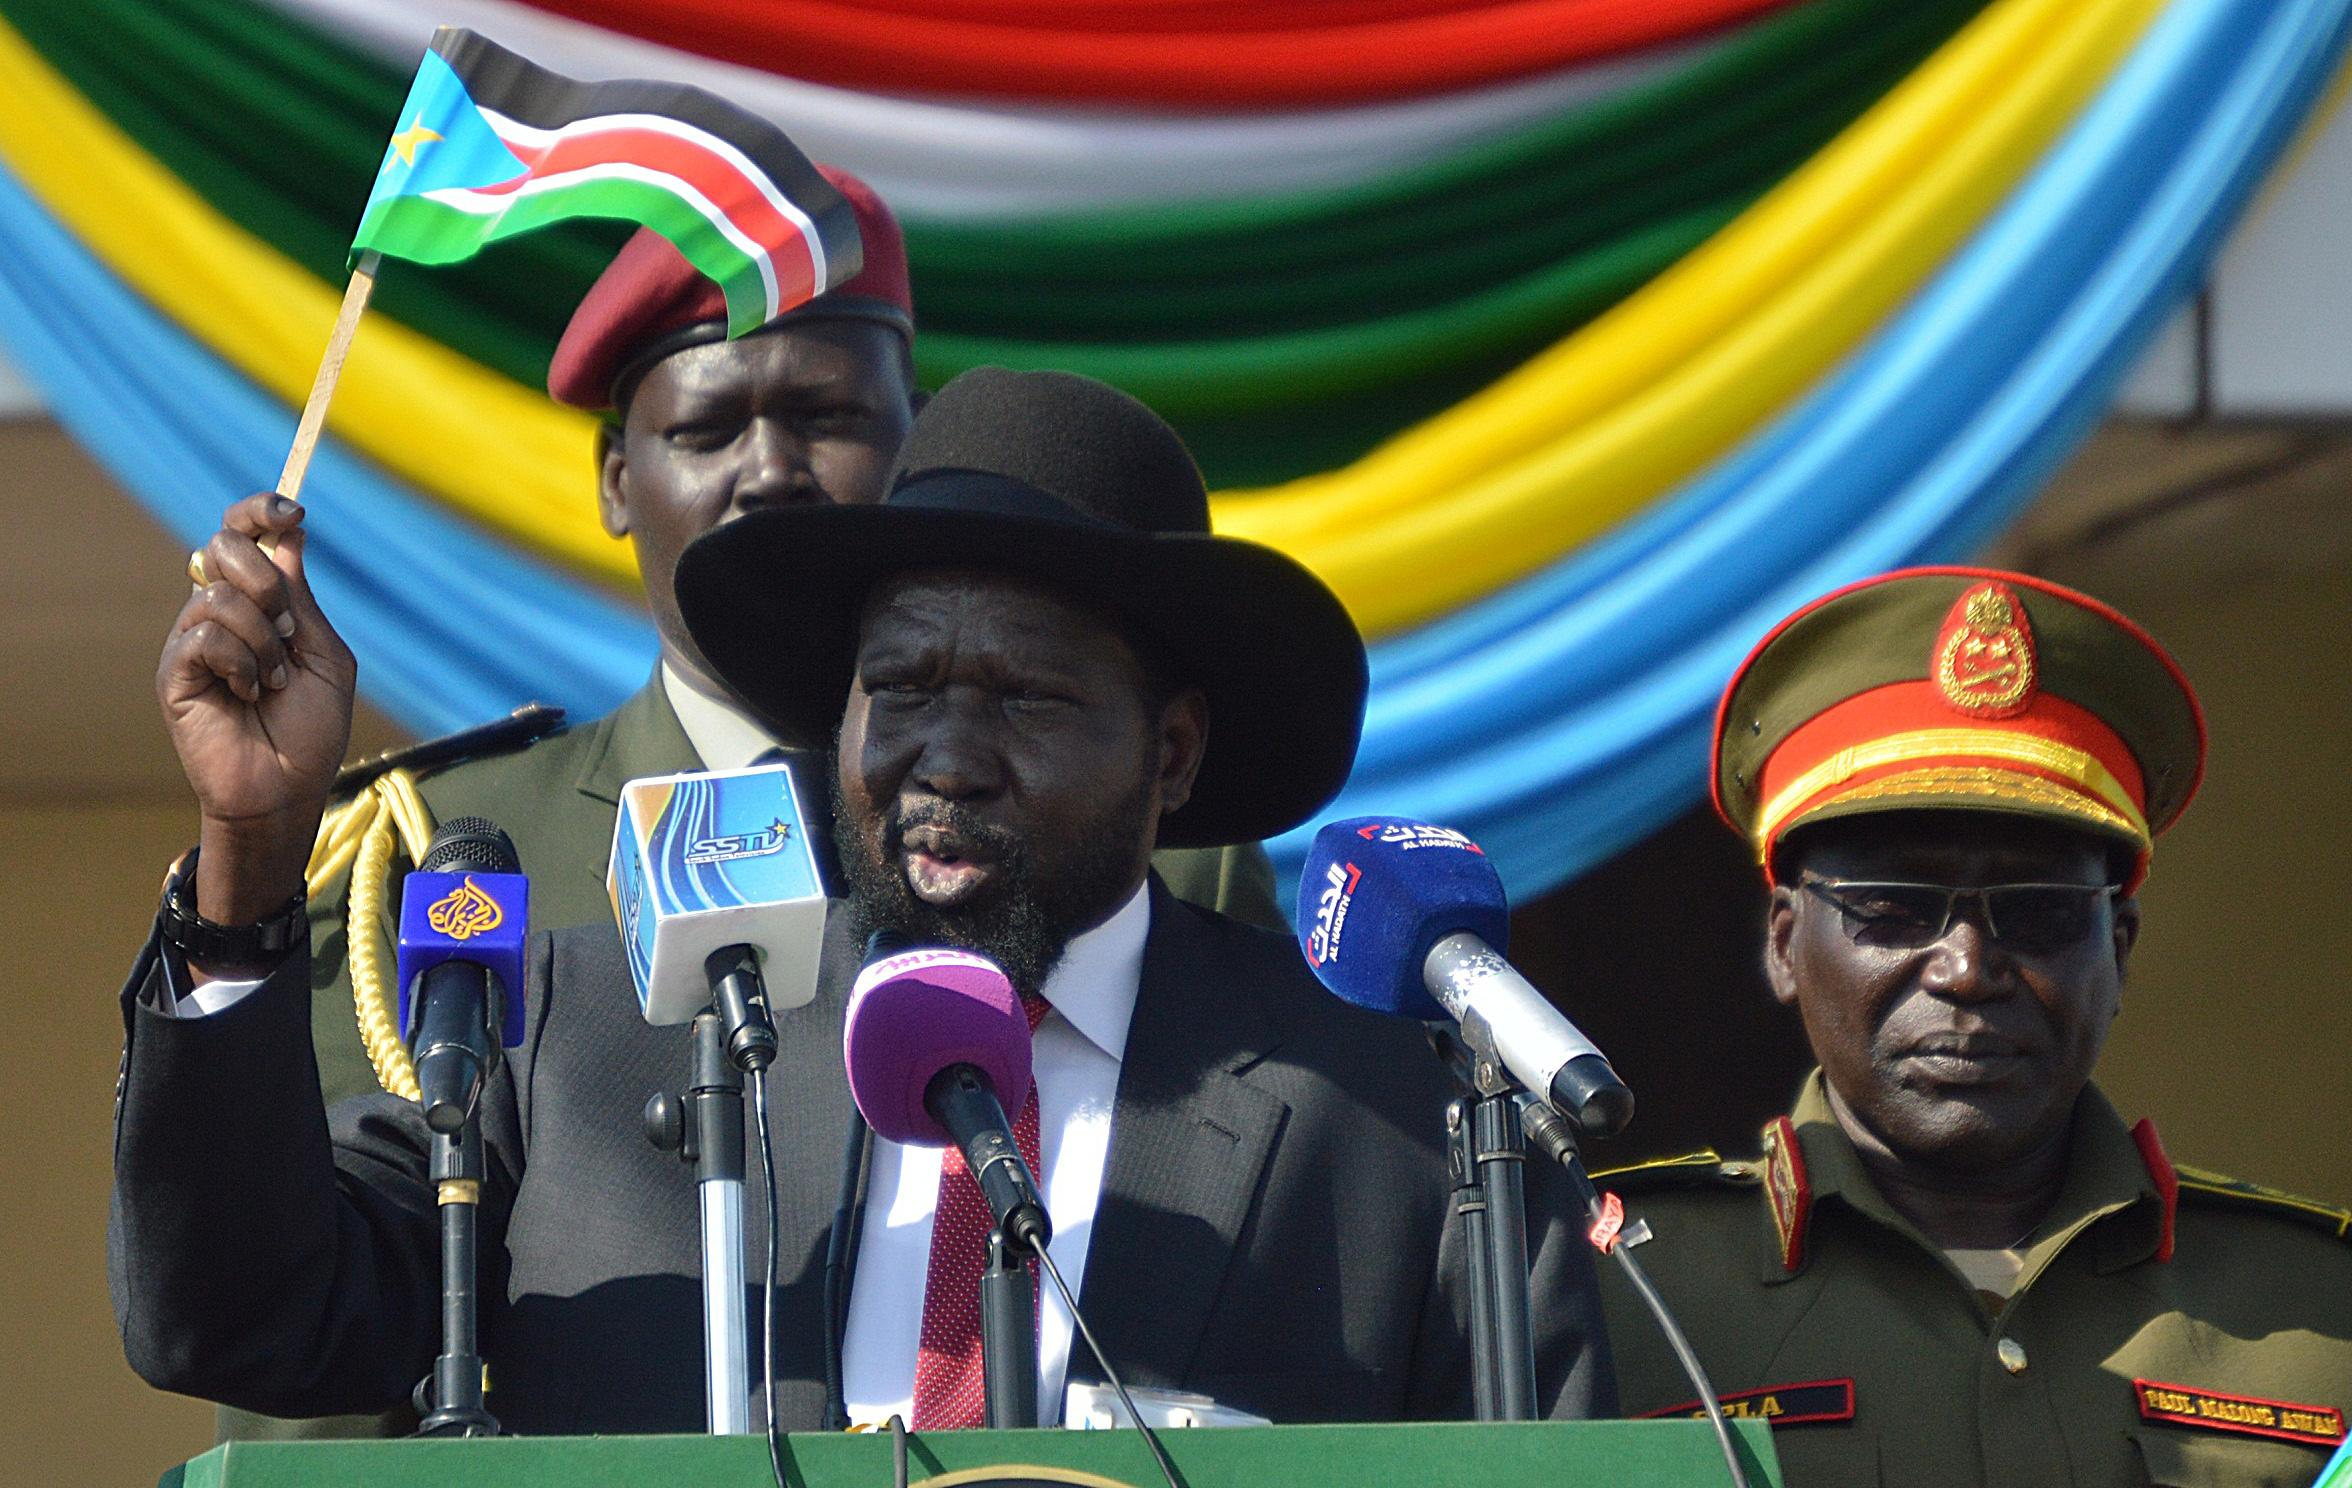 South Sudan's President Salva Kiir gives a speech at the airport in Juba on August 10, 2014